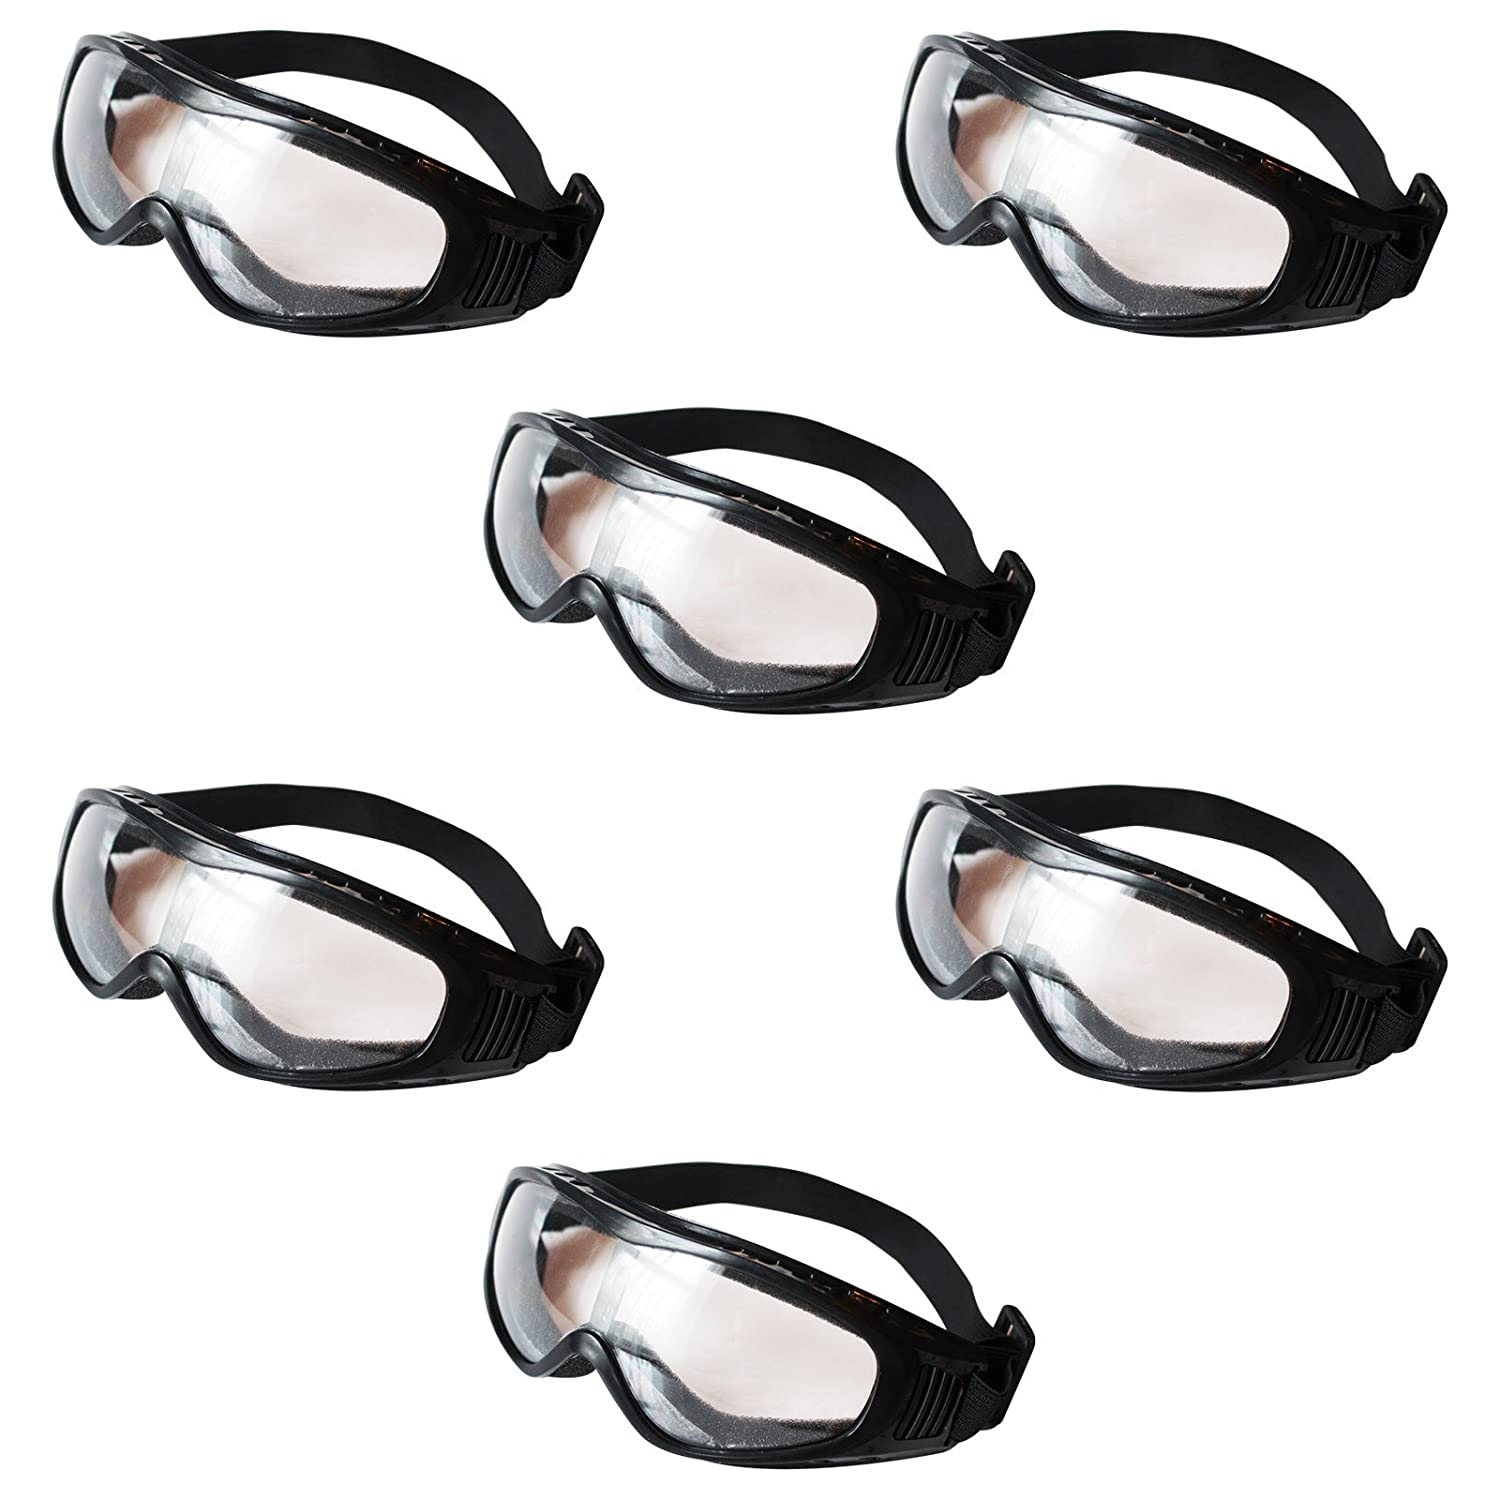 Kurtzy 6 Pack of Black Clear Lens Protective Safety Glasses Goggles by Bulk Set of Eyewear for Use in the Chemistry Lab, on Building Sites, with Chemicals and more - Padded Design for Comfort SO-9011